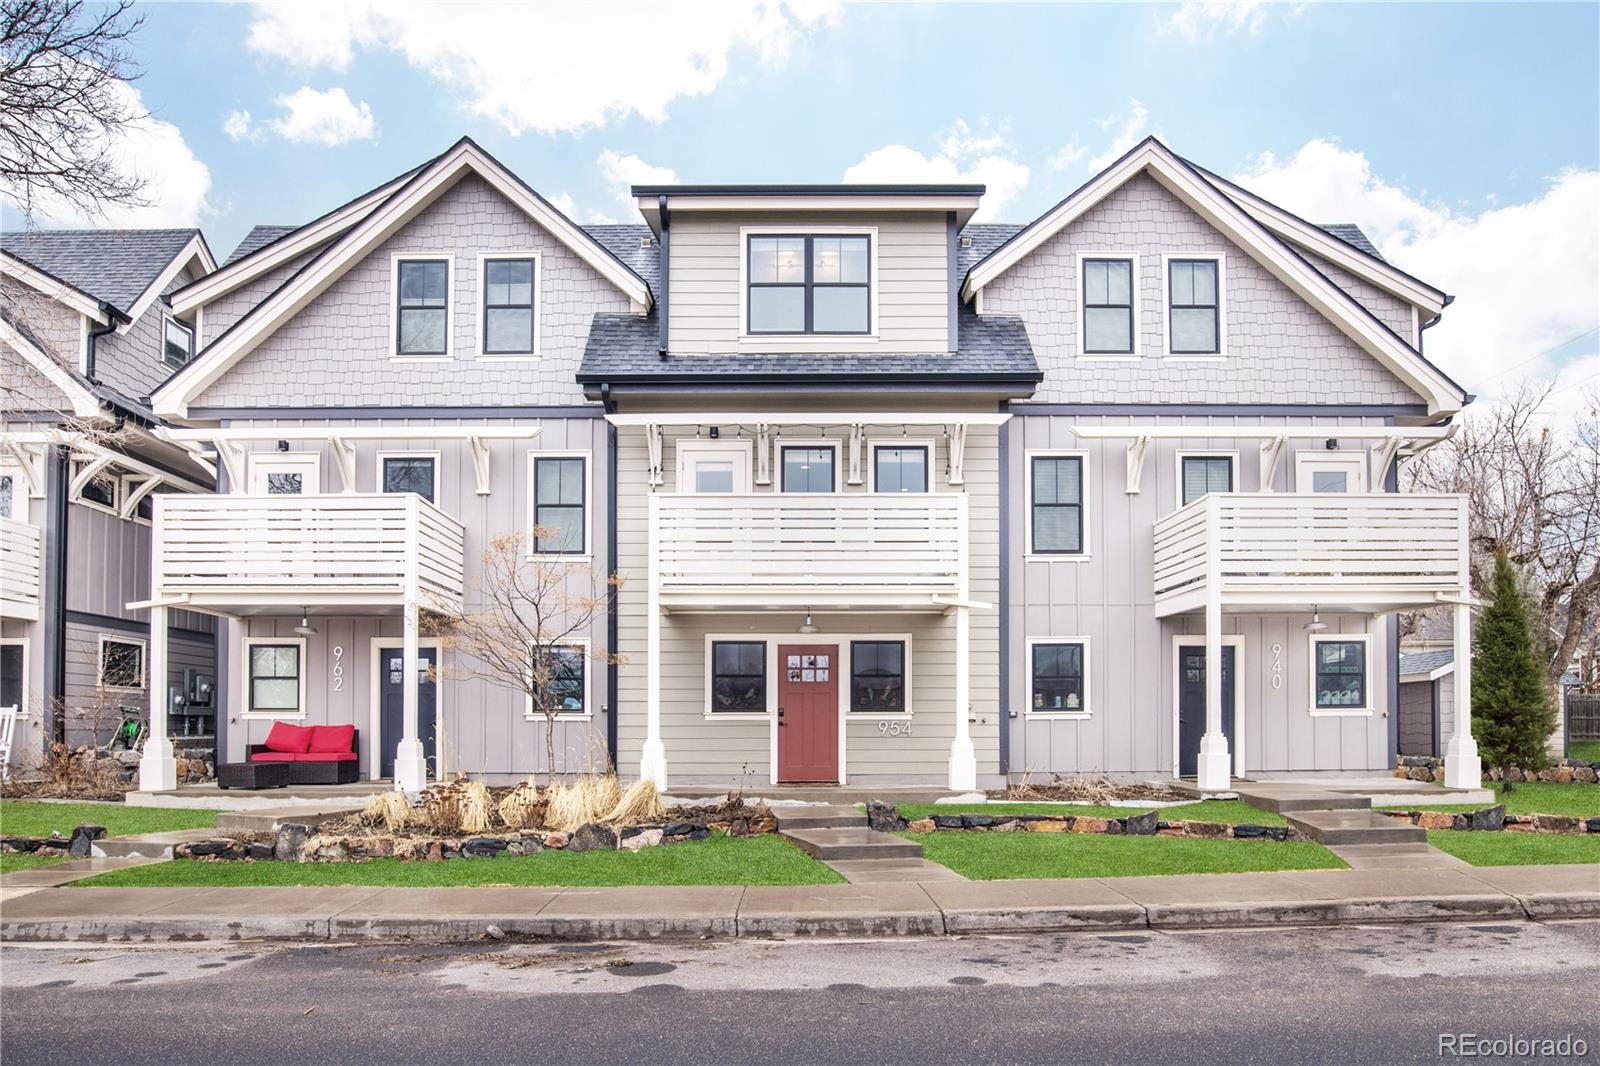 954 Elm St Property Photo - Louisville, CO real estate listing